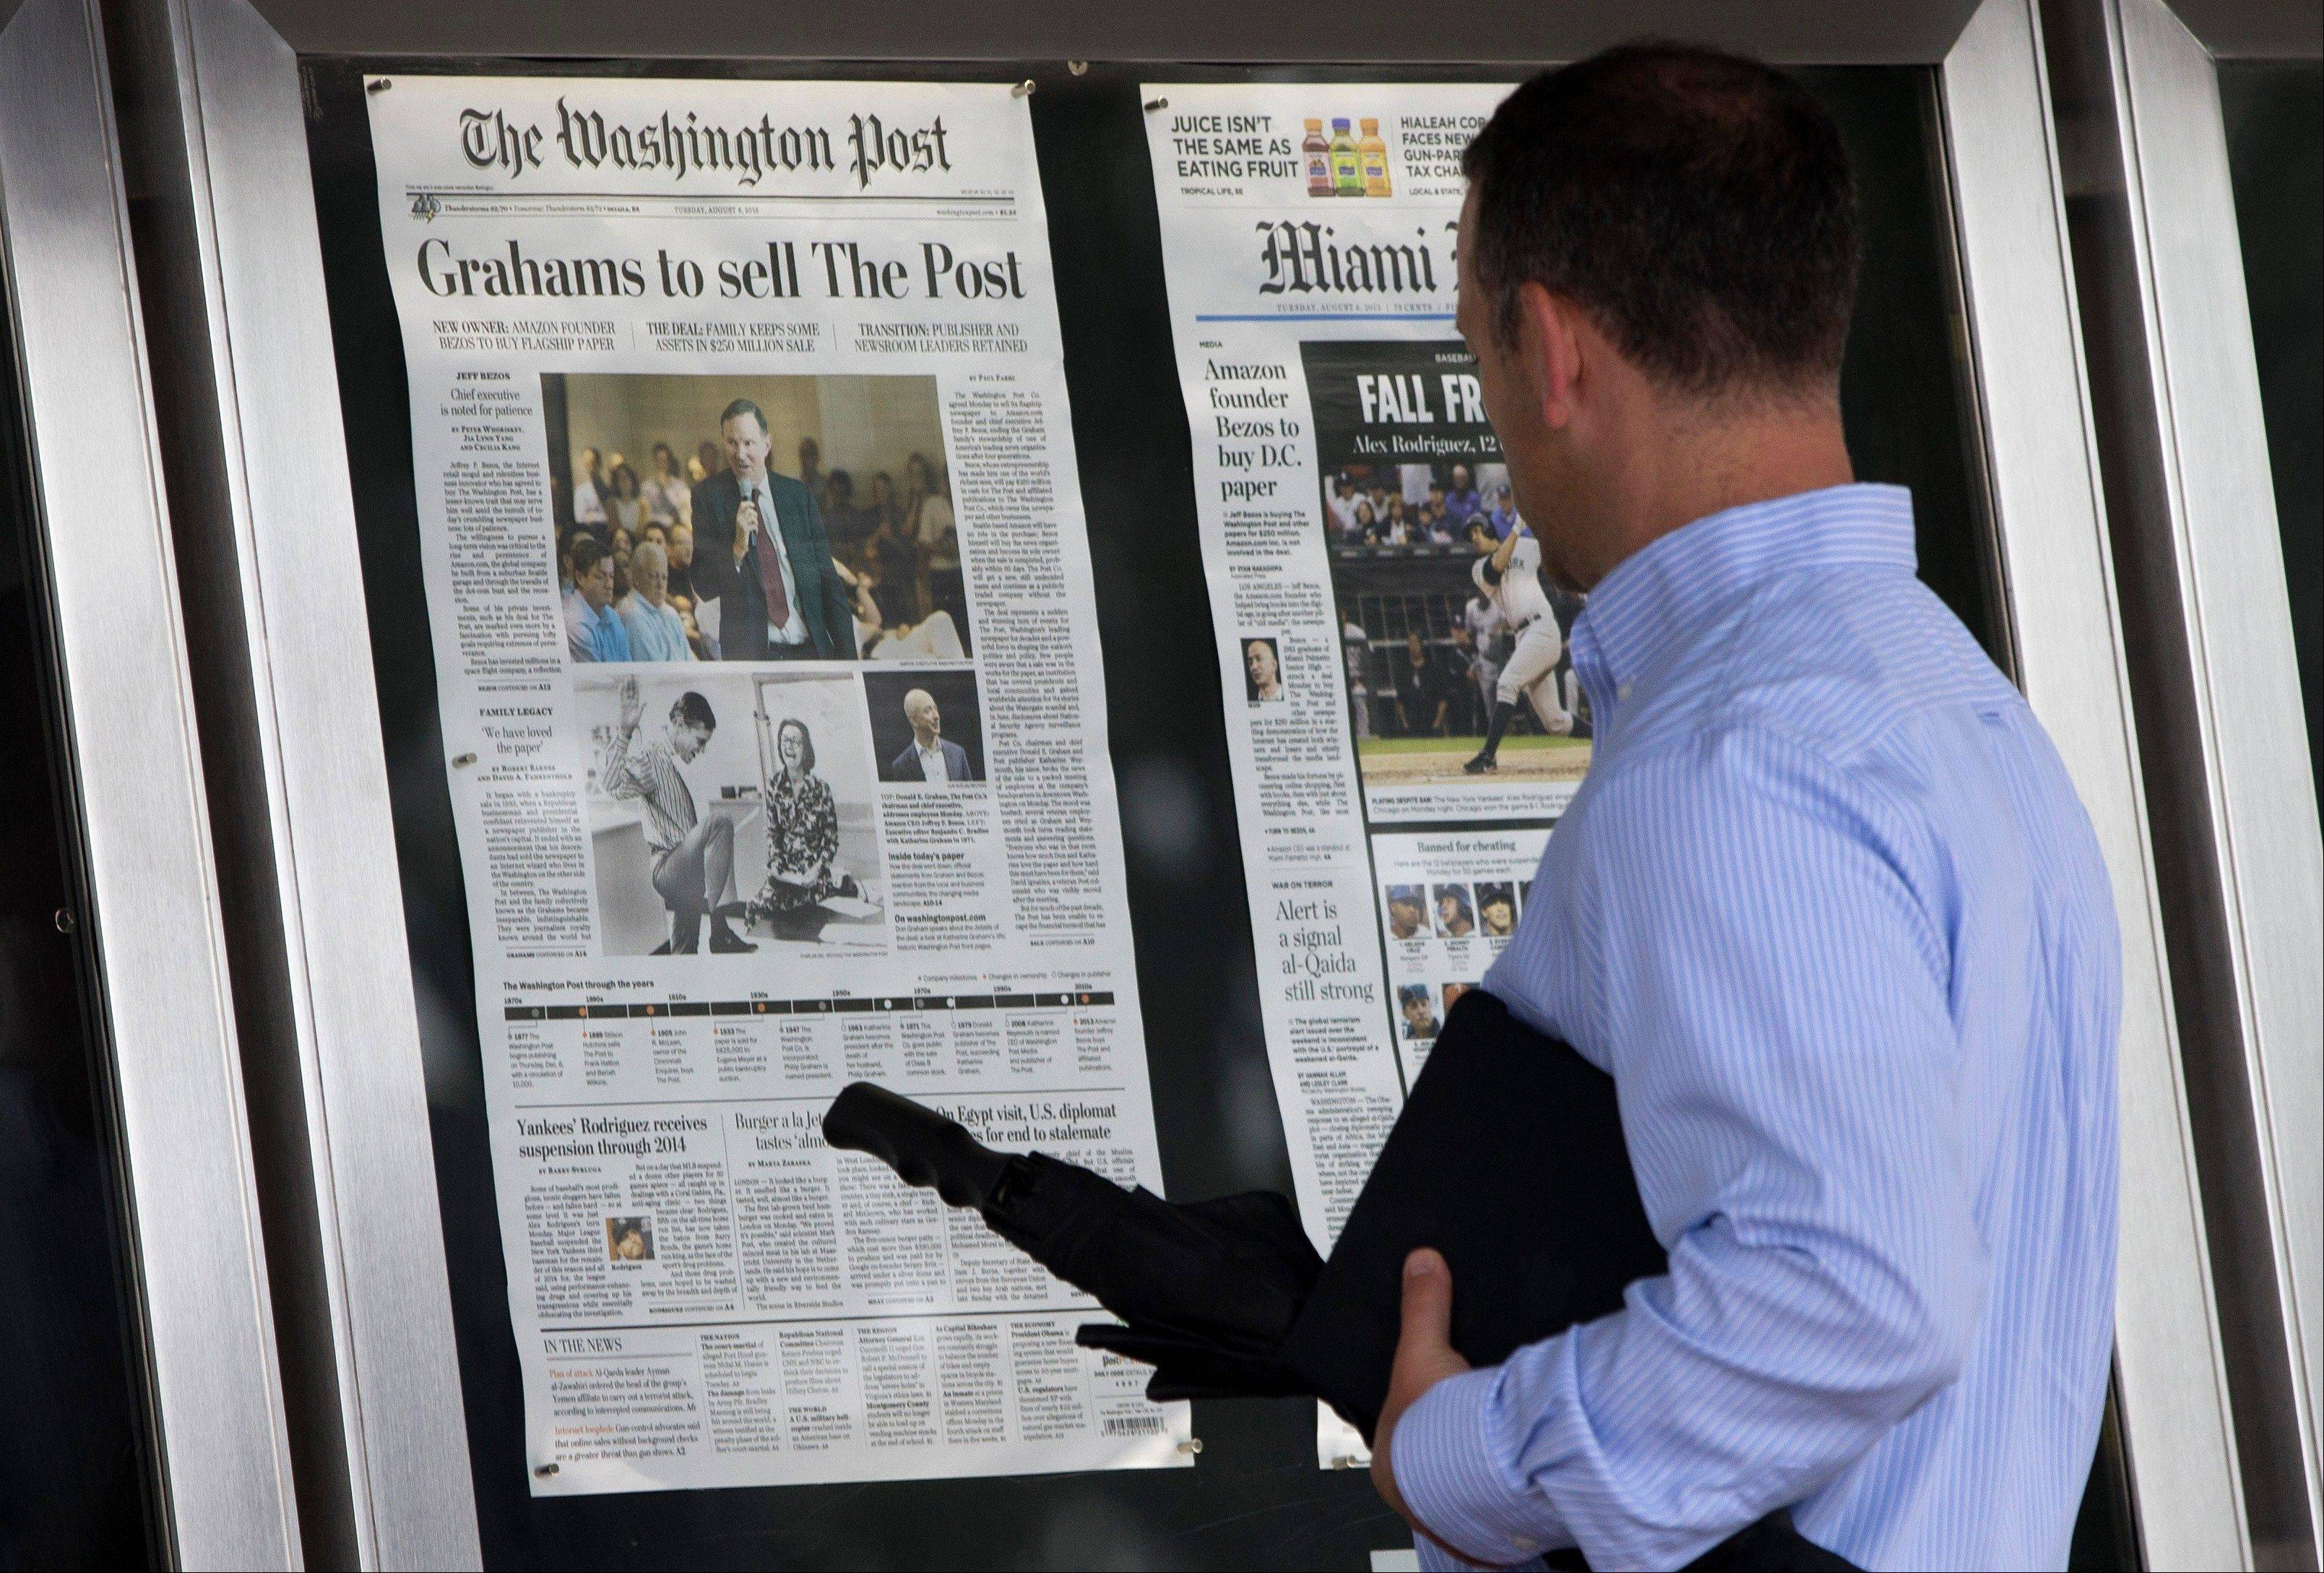 A visitor views the front page of the Washington Post, displayed outside the Newseum in Washington, on Tuesday, a day after it was announced that Amazon.com founder Jeff Bezos bought the newspaper for $250 million.